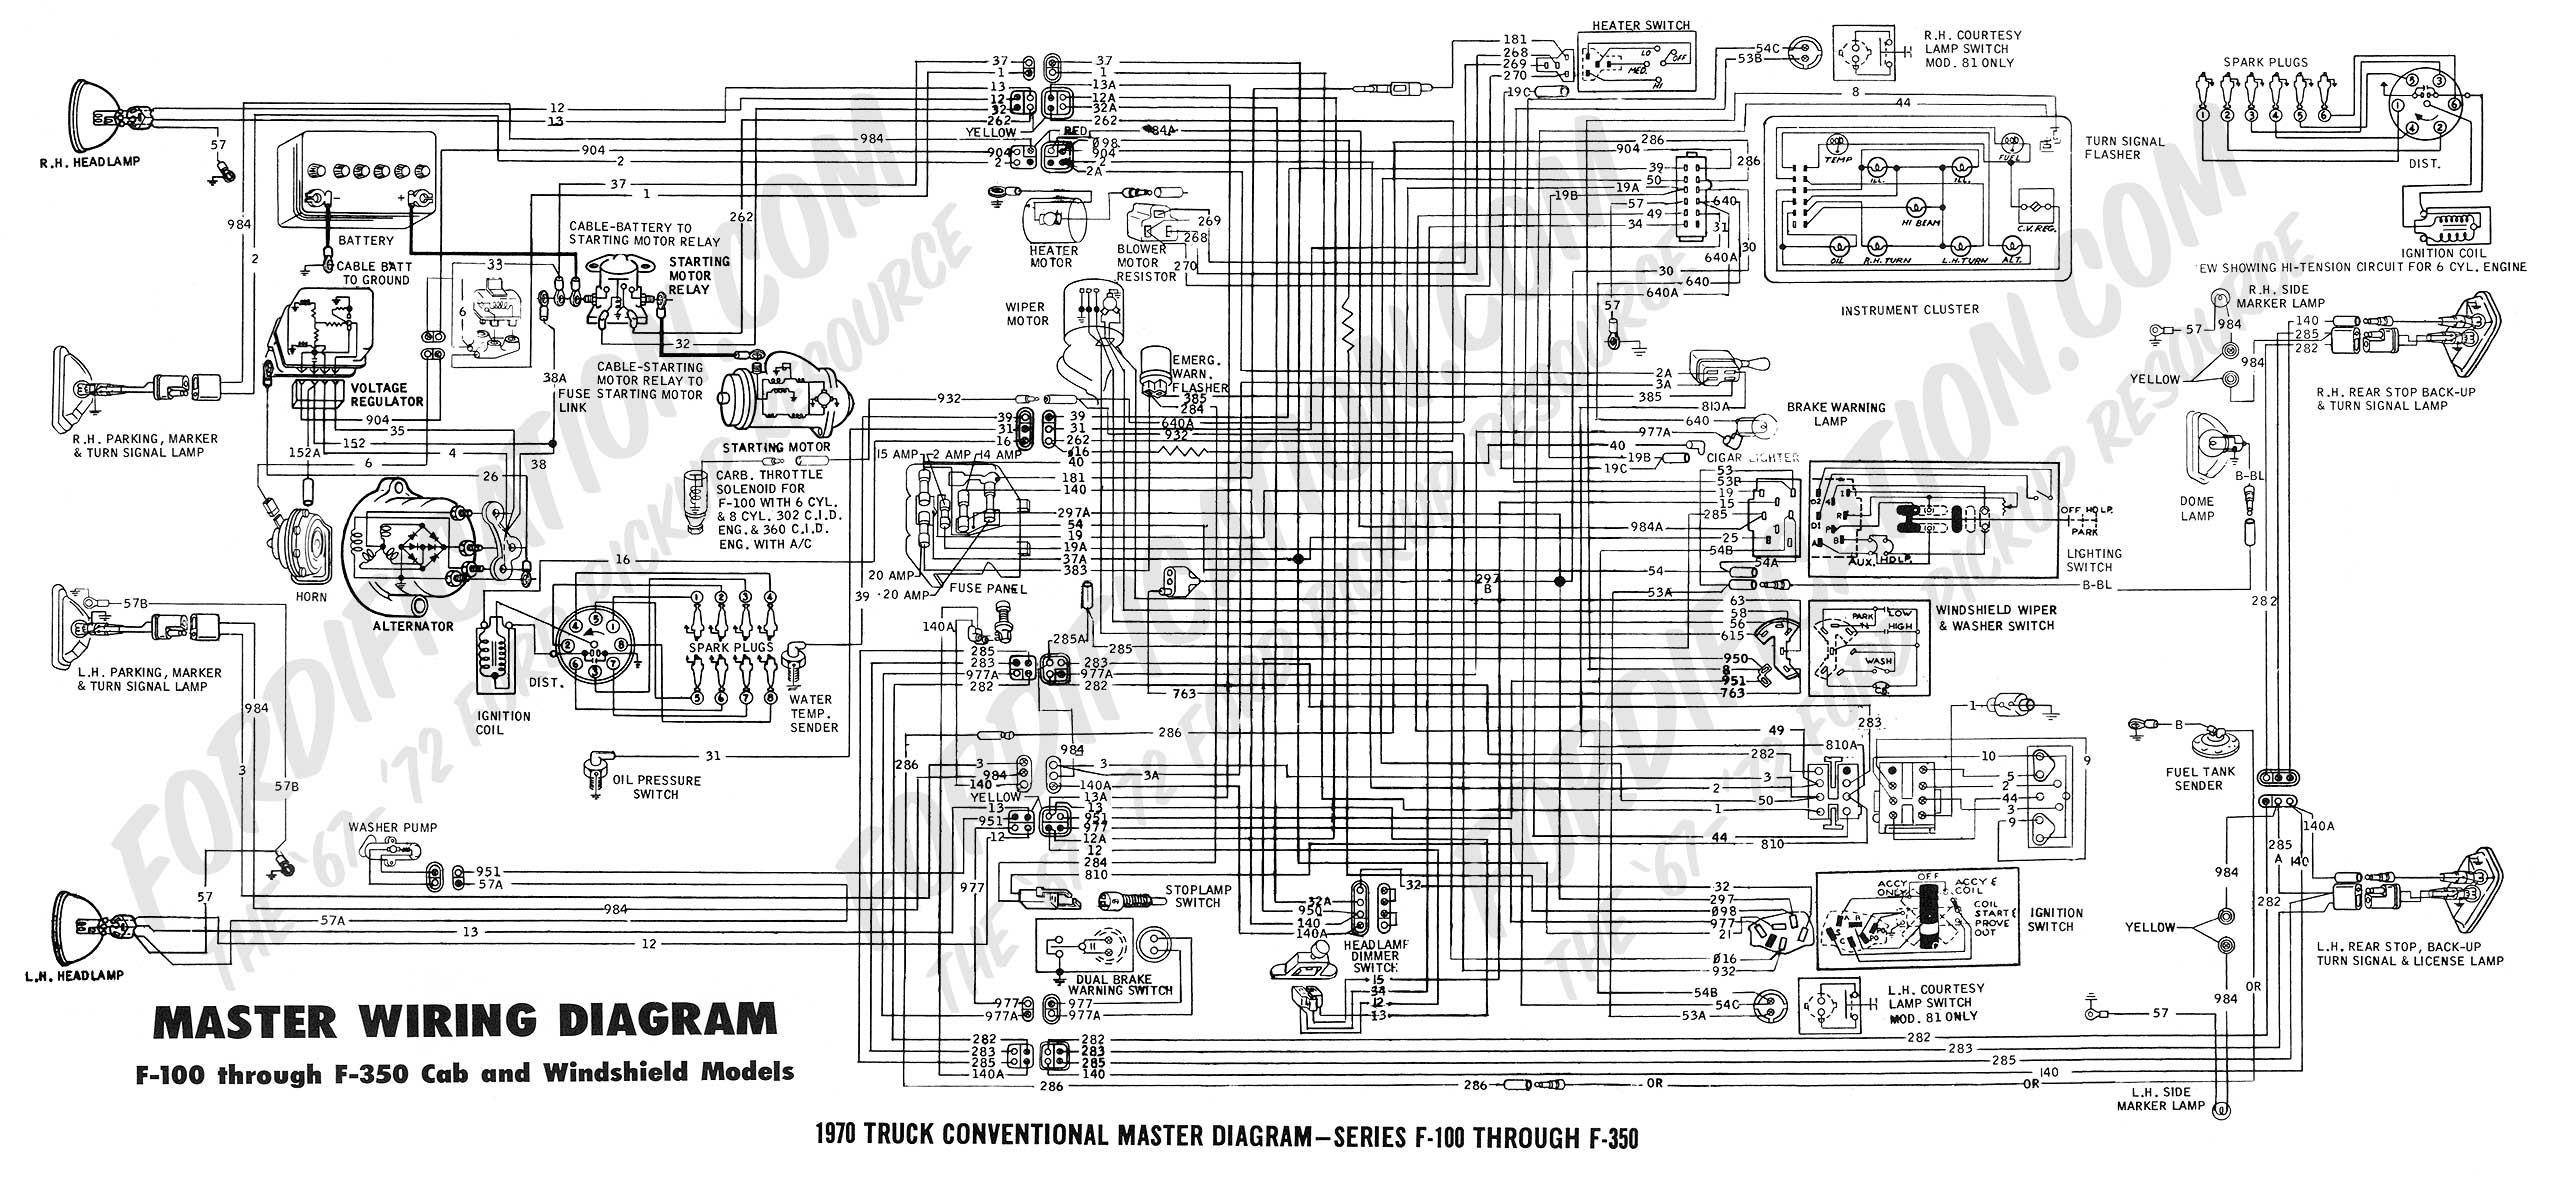 wiring diagram 70_master ford truck technical drawings and schematics section h wiring 1970 ford wiring diagram at soozxer.org